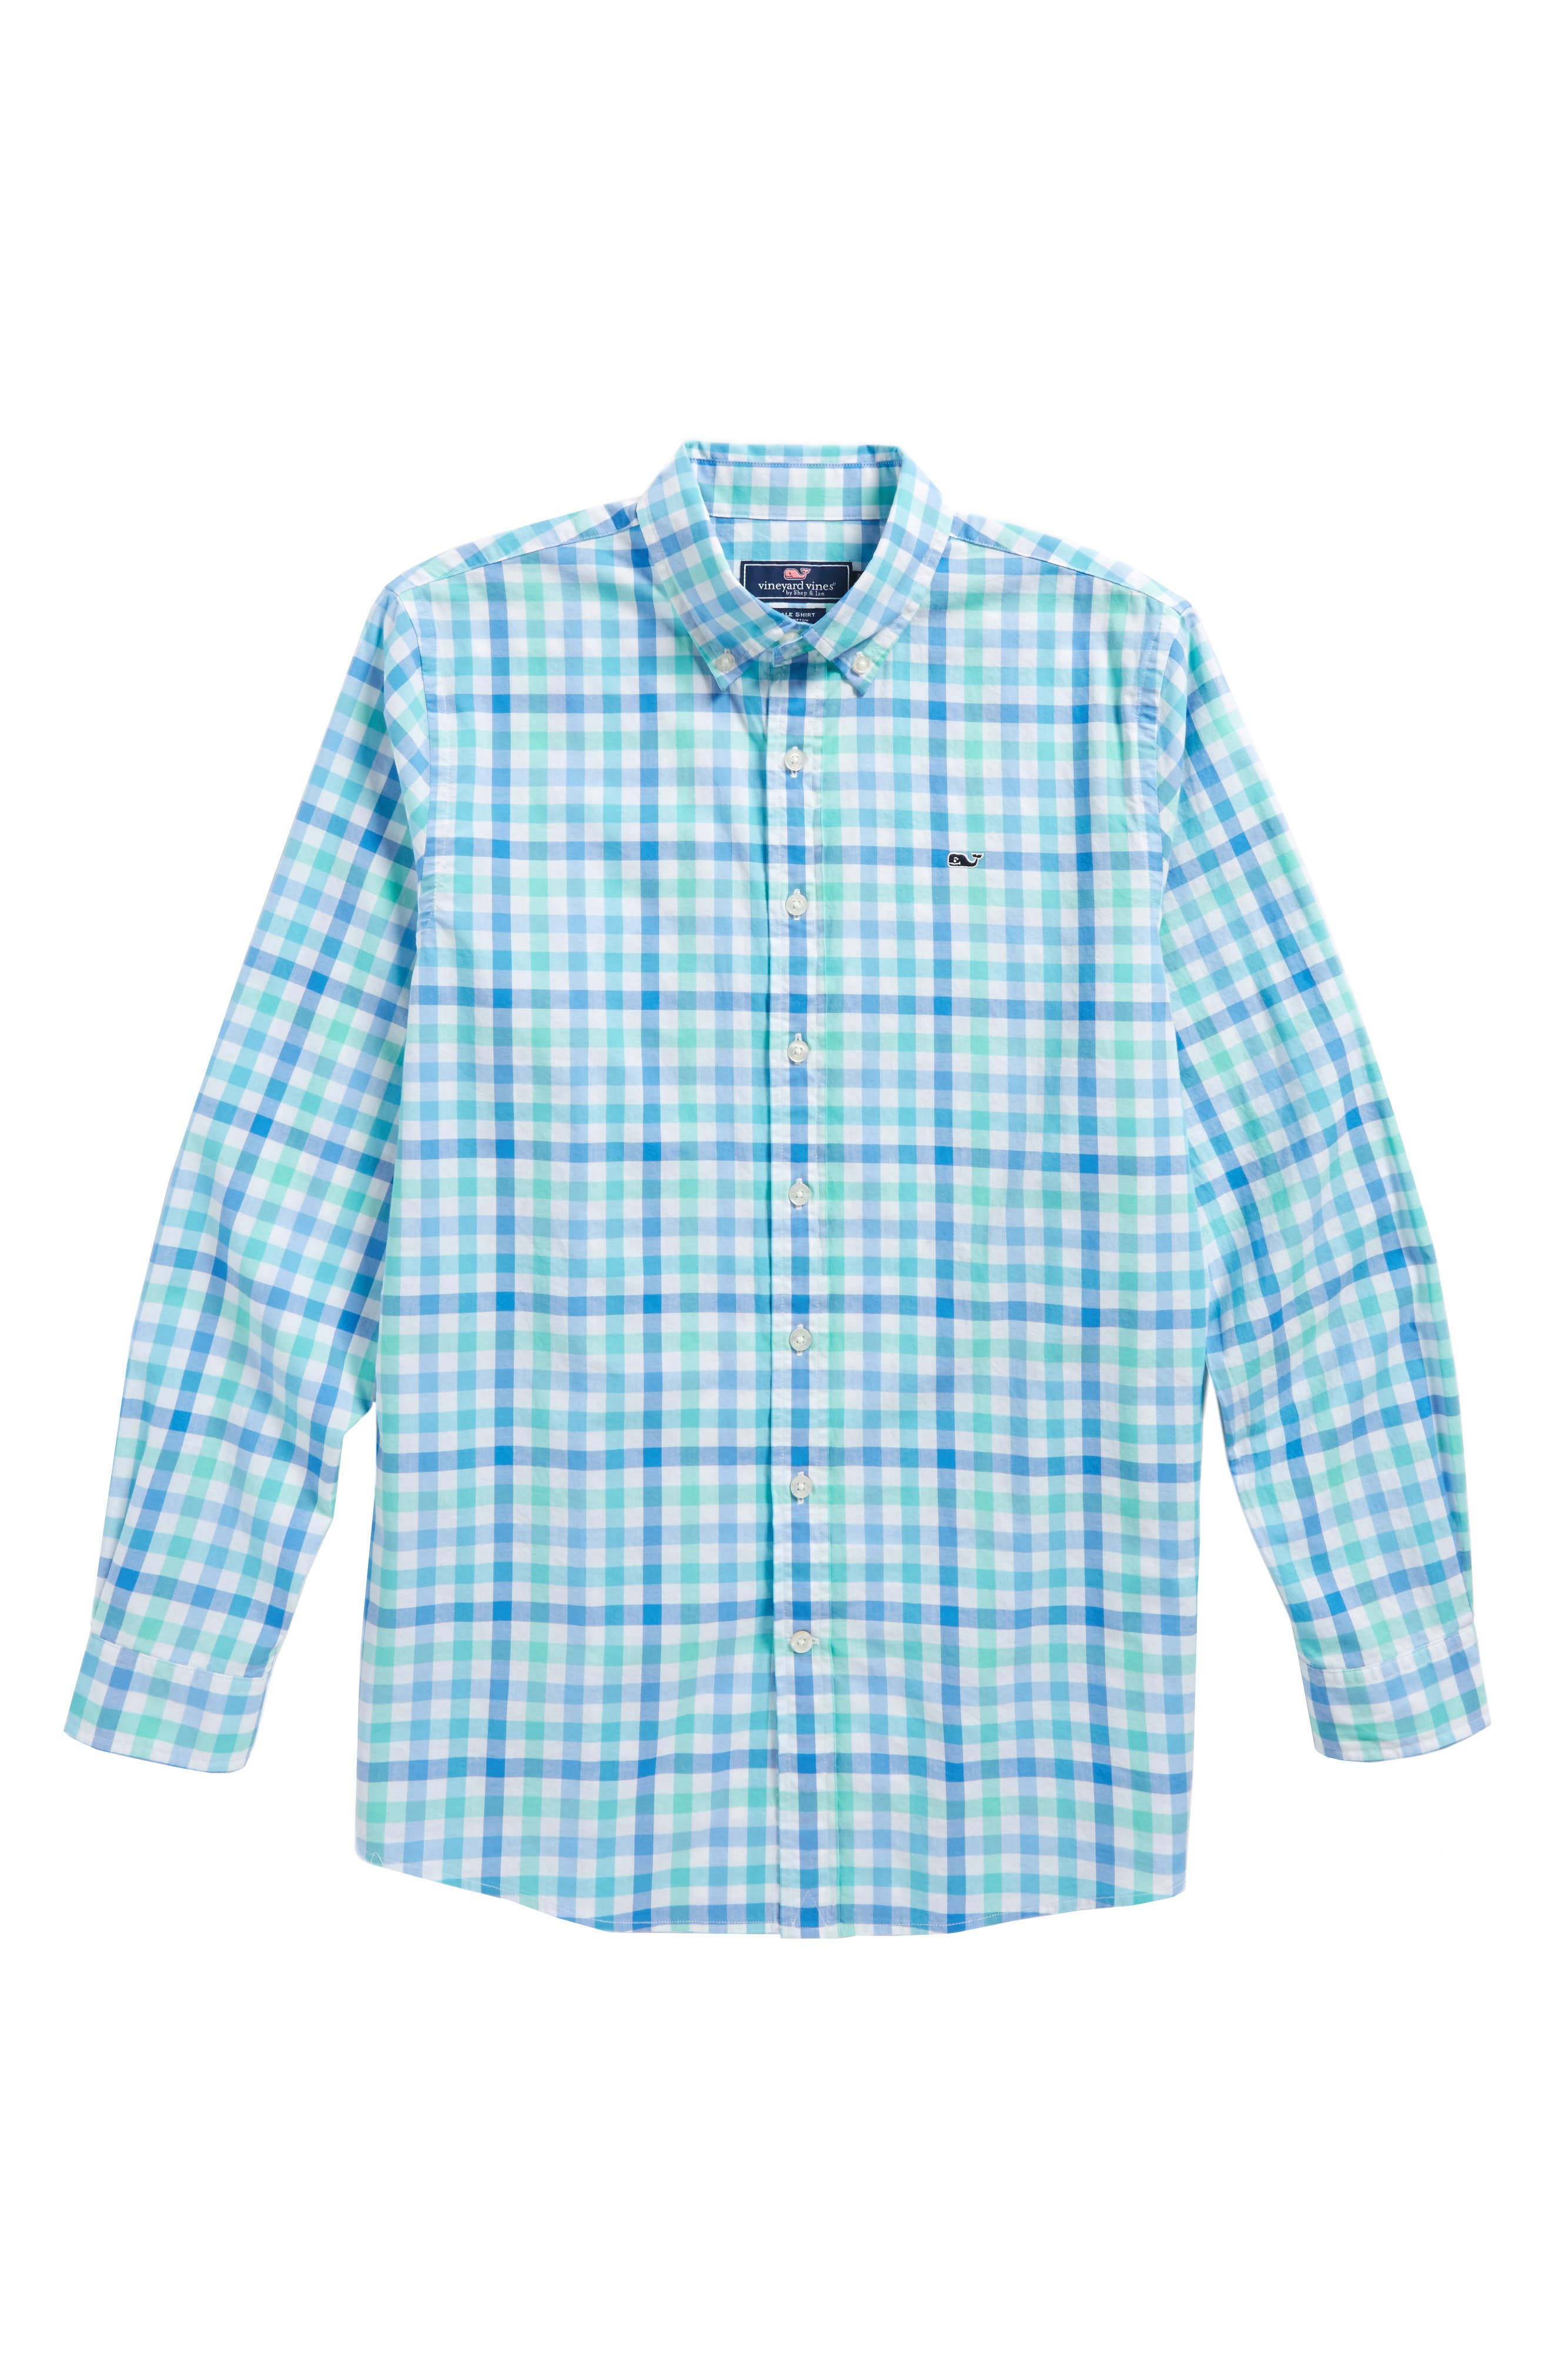 Main Image - vineyard vines Eagle's Nest Gingham Whale Shirt (Big Boys)